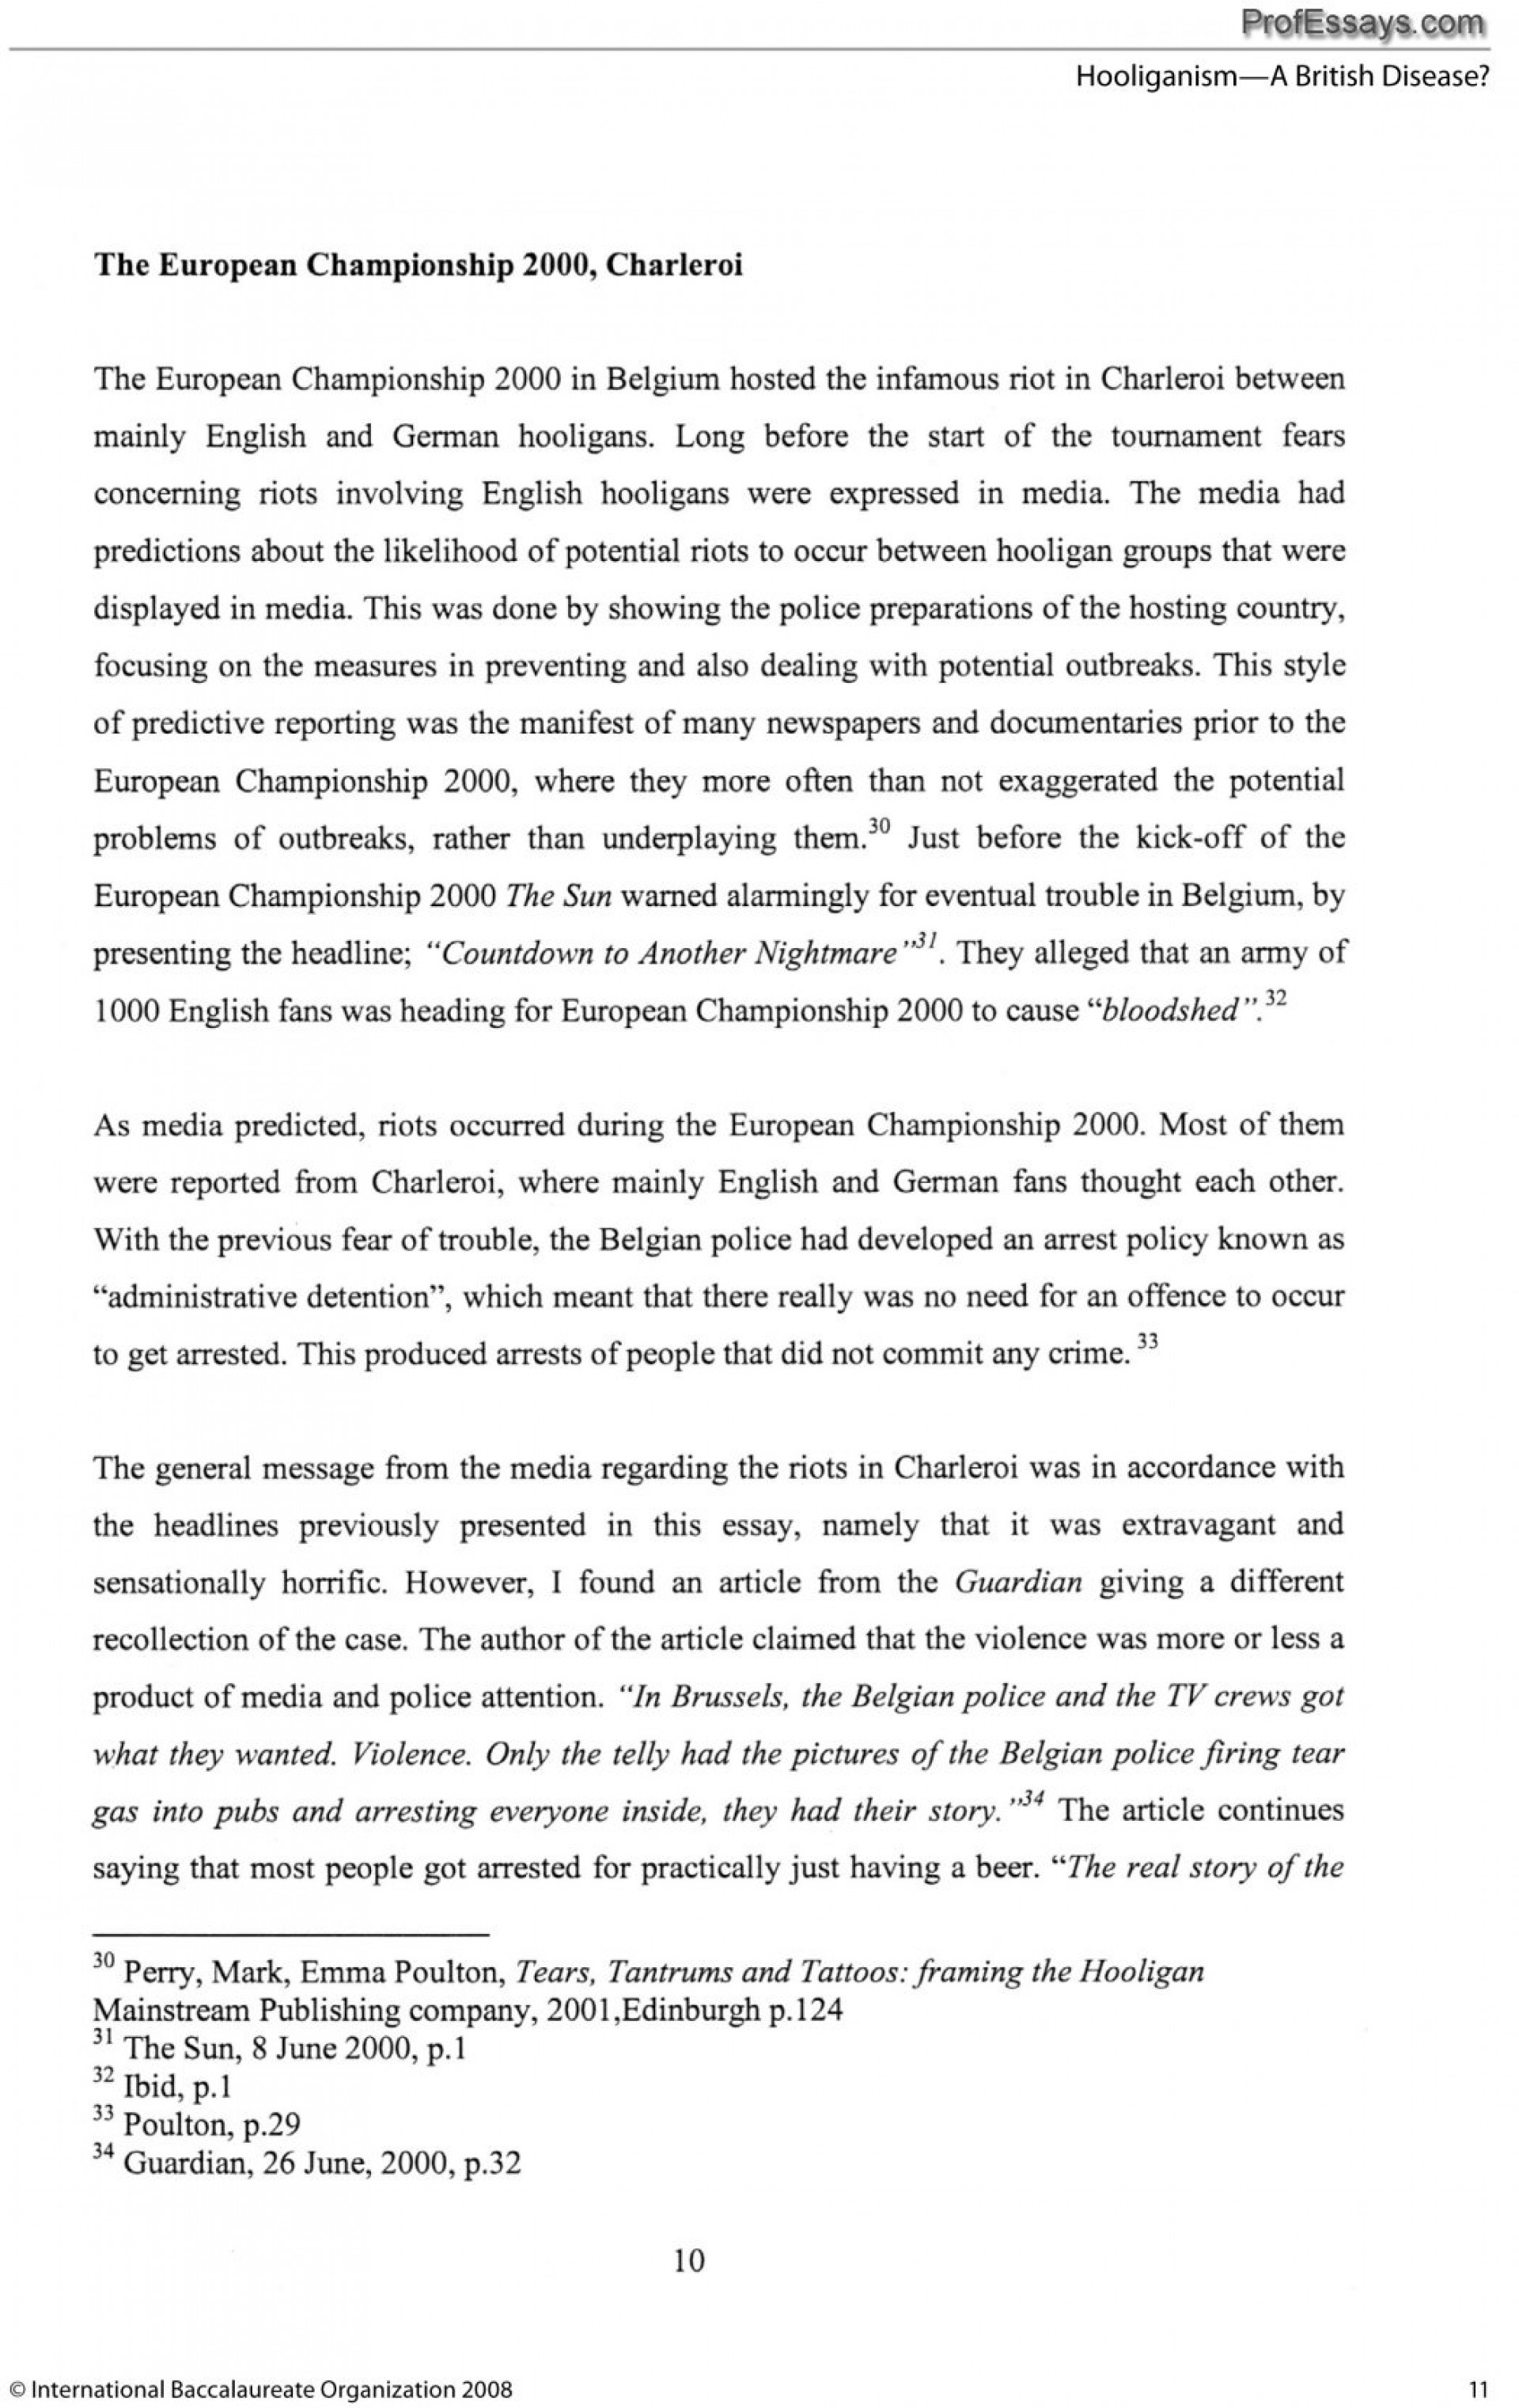 001 Essay Example Travel Examples College Writing Sample Essays Writers Travelling Ielts Ib Extended Benefits Of Value Unique Definition Photo Submissions 1920